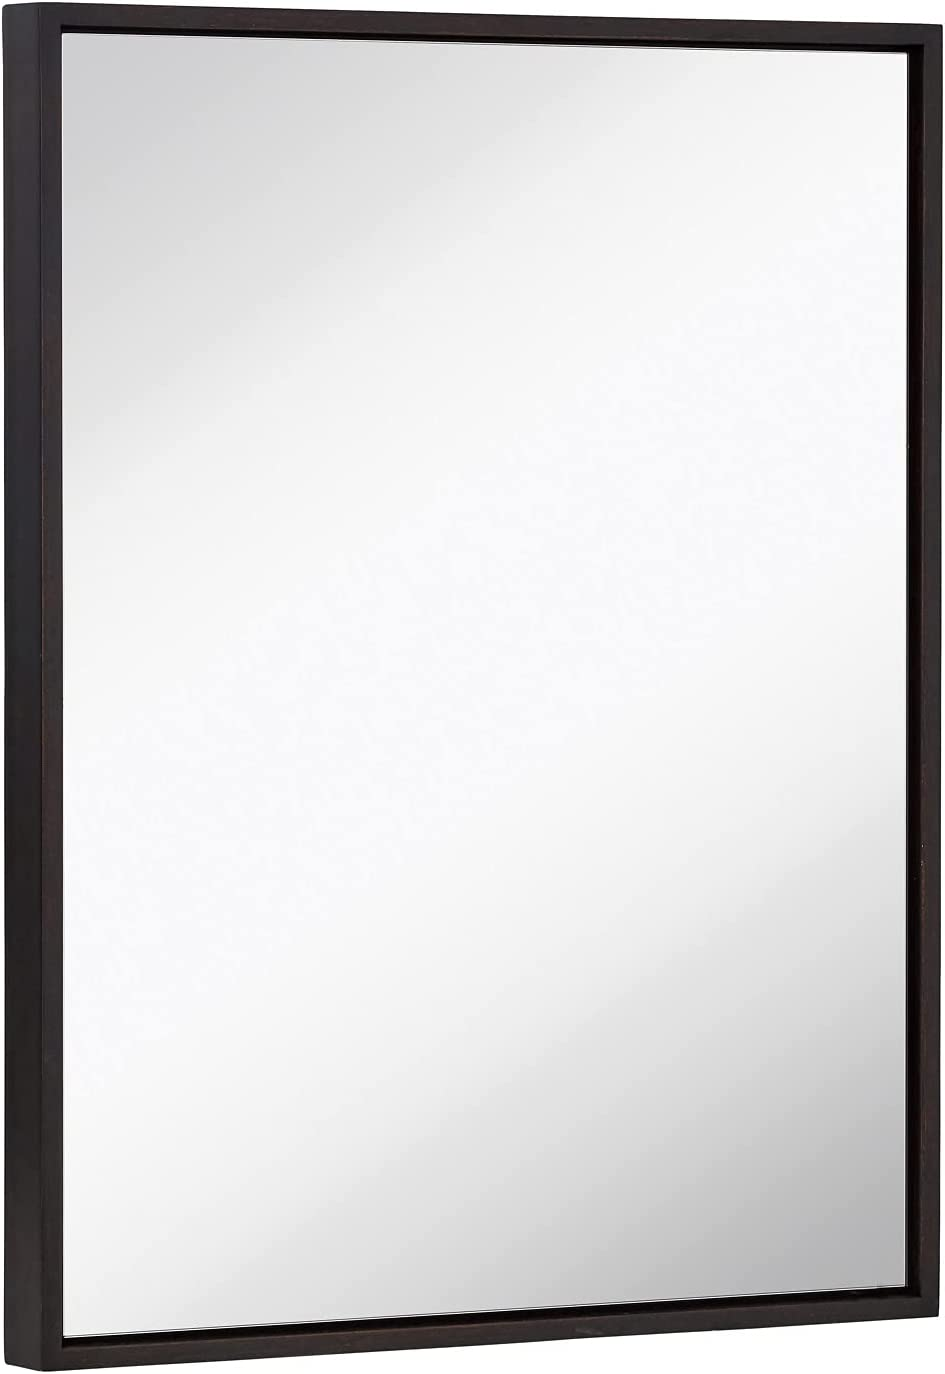 Hamilton Hills Clean Large Modern Black Frame Wall Mirror | Contemporary Premium Silver Backed Floating Glass Panel Vanity or Bathroom Mirrored Rectangle Hangs Horizontal or Vertical 22